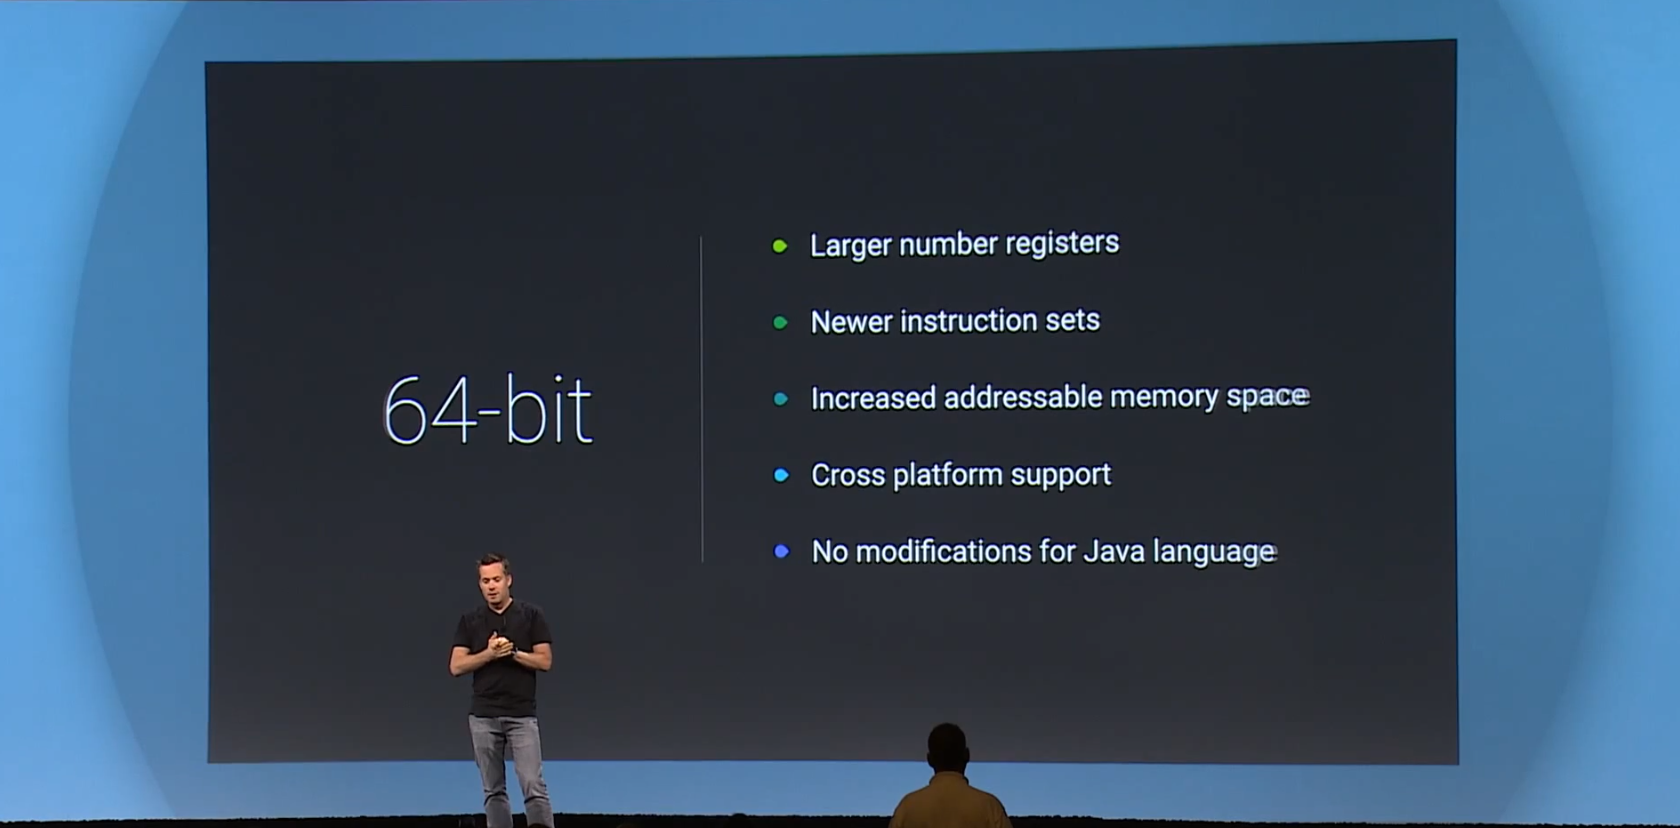 Android L 64-bit